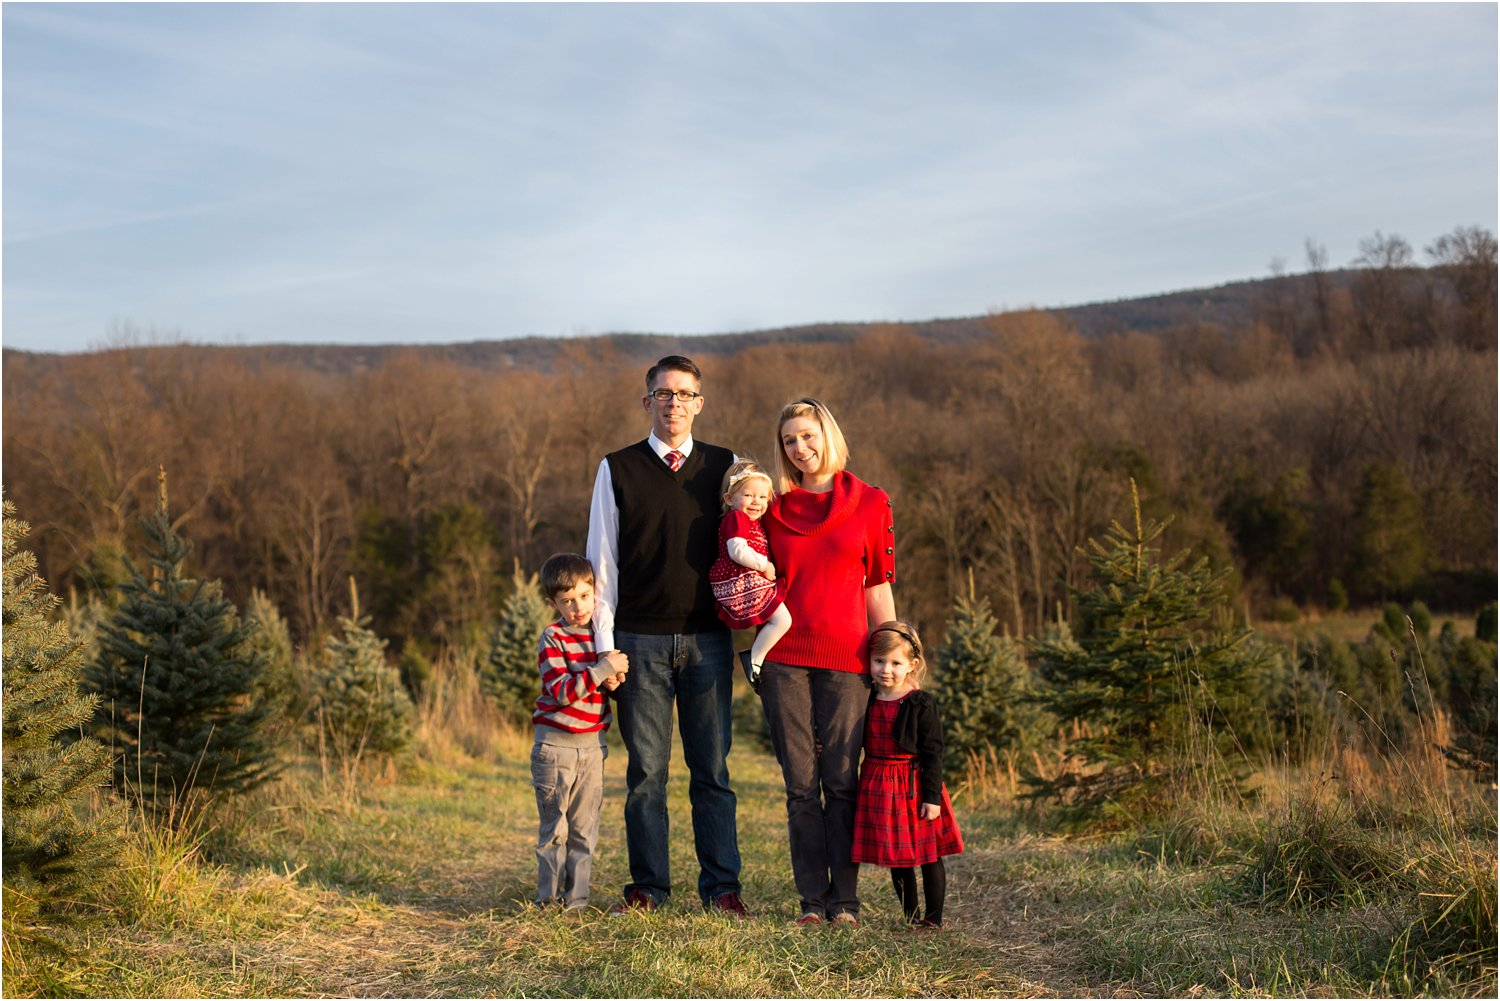 Evergreen_Christmas_Tree_Farm_Family_Portraits_0014.jpg